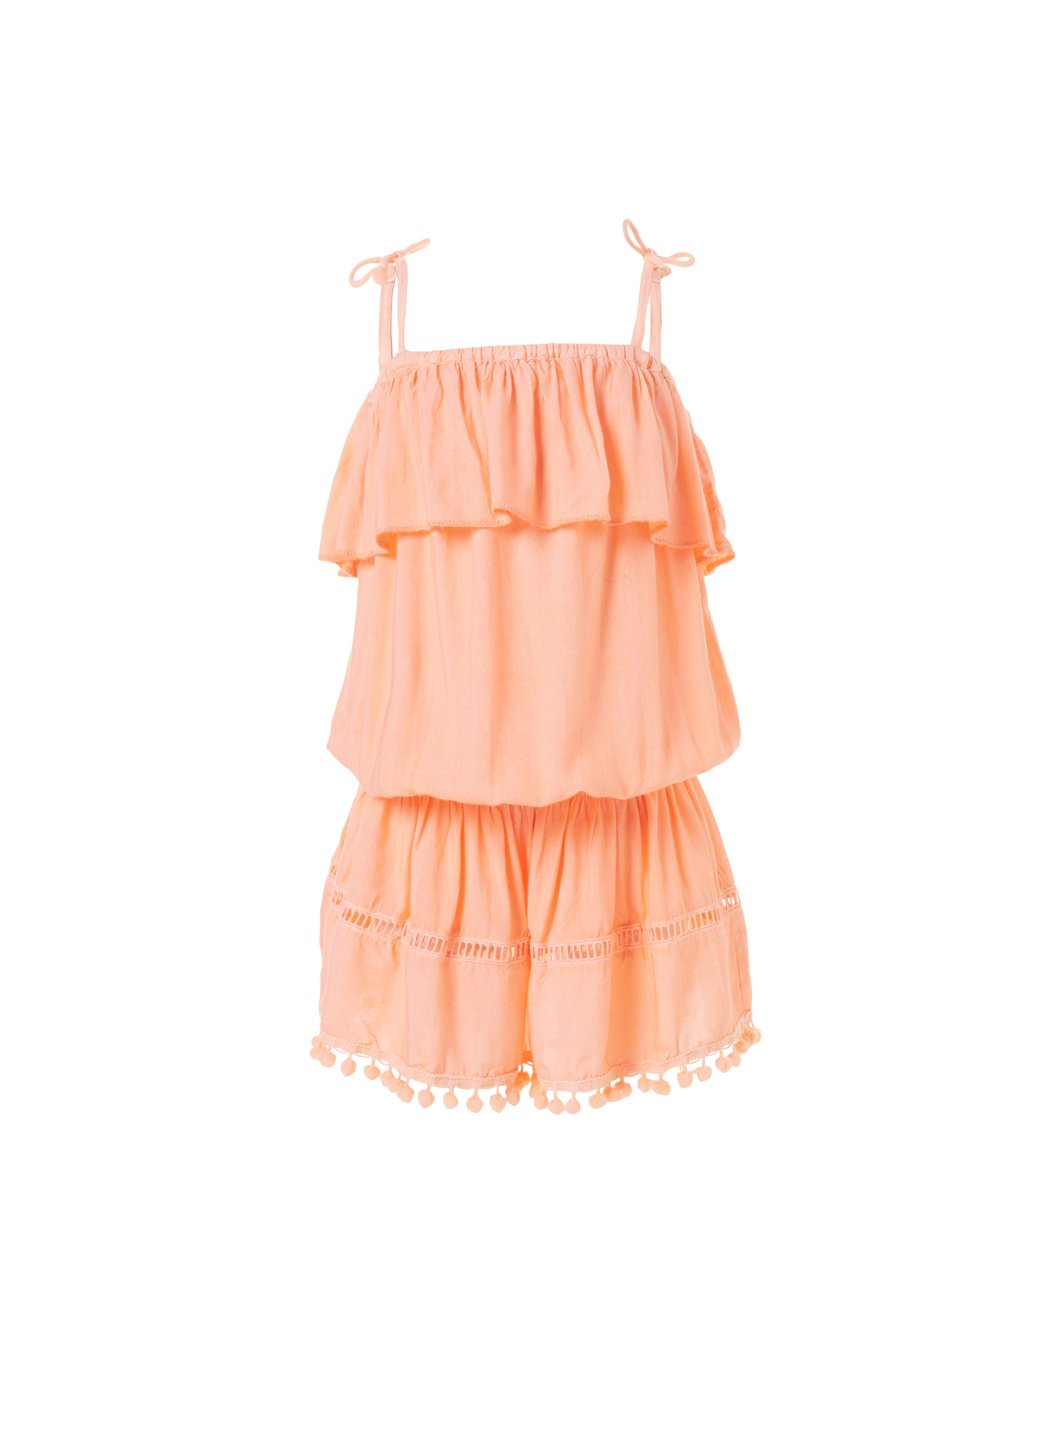 baby joy mango beach dress 2019